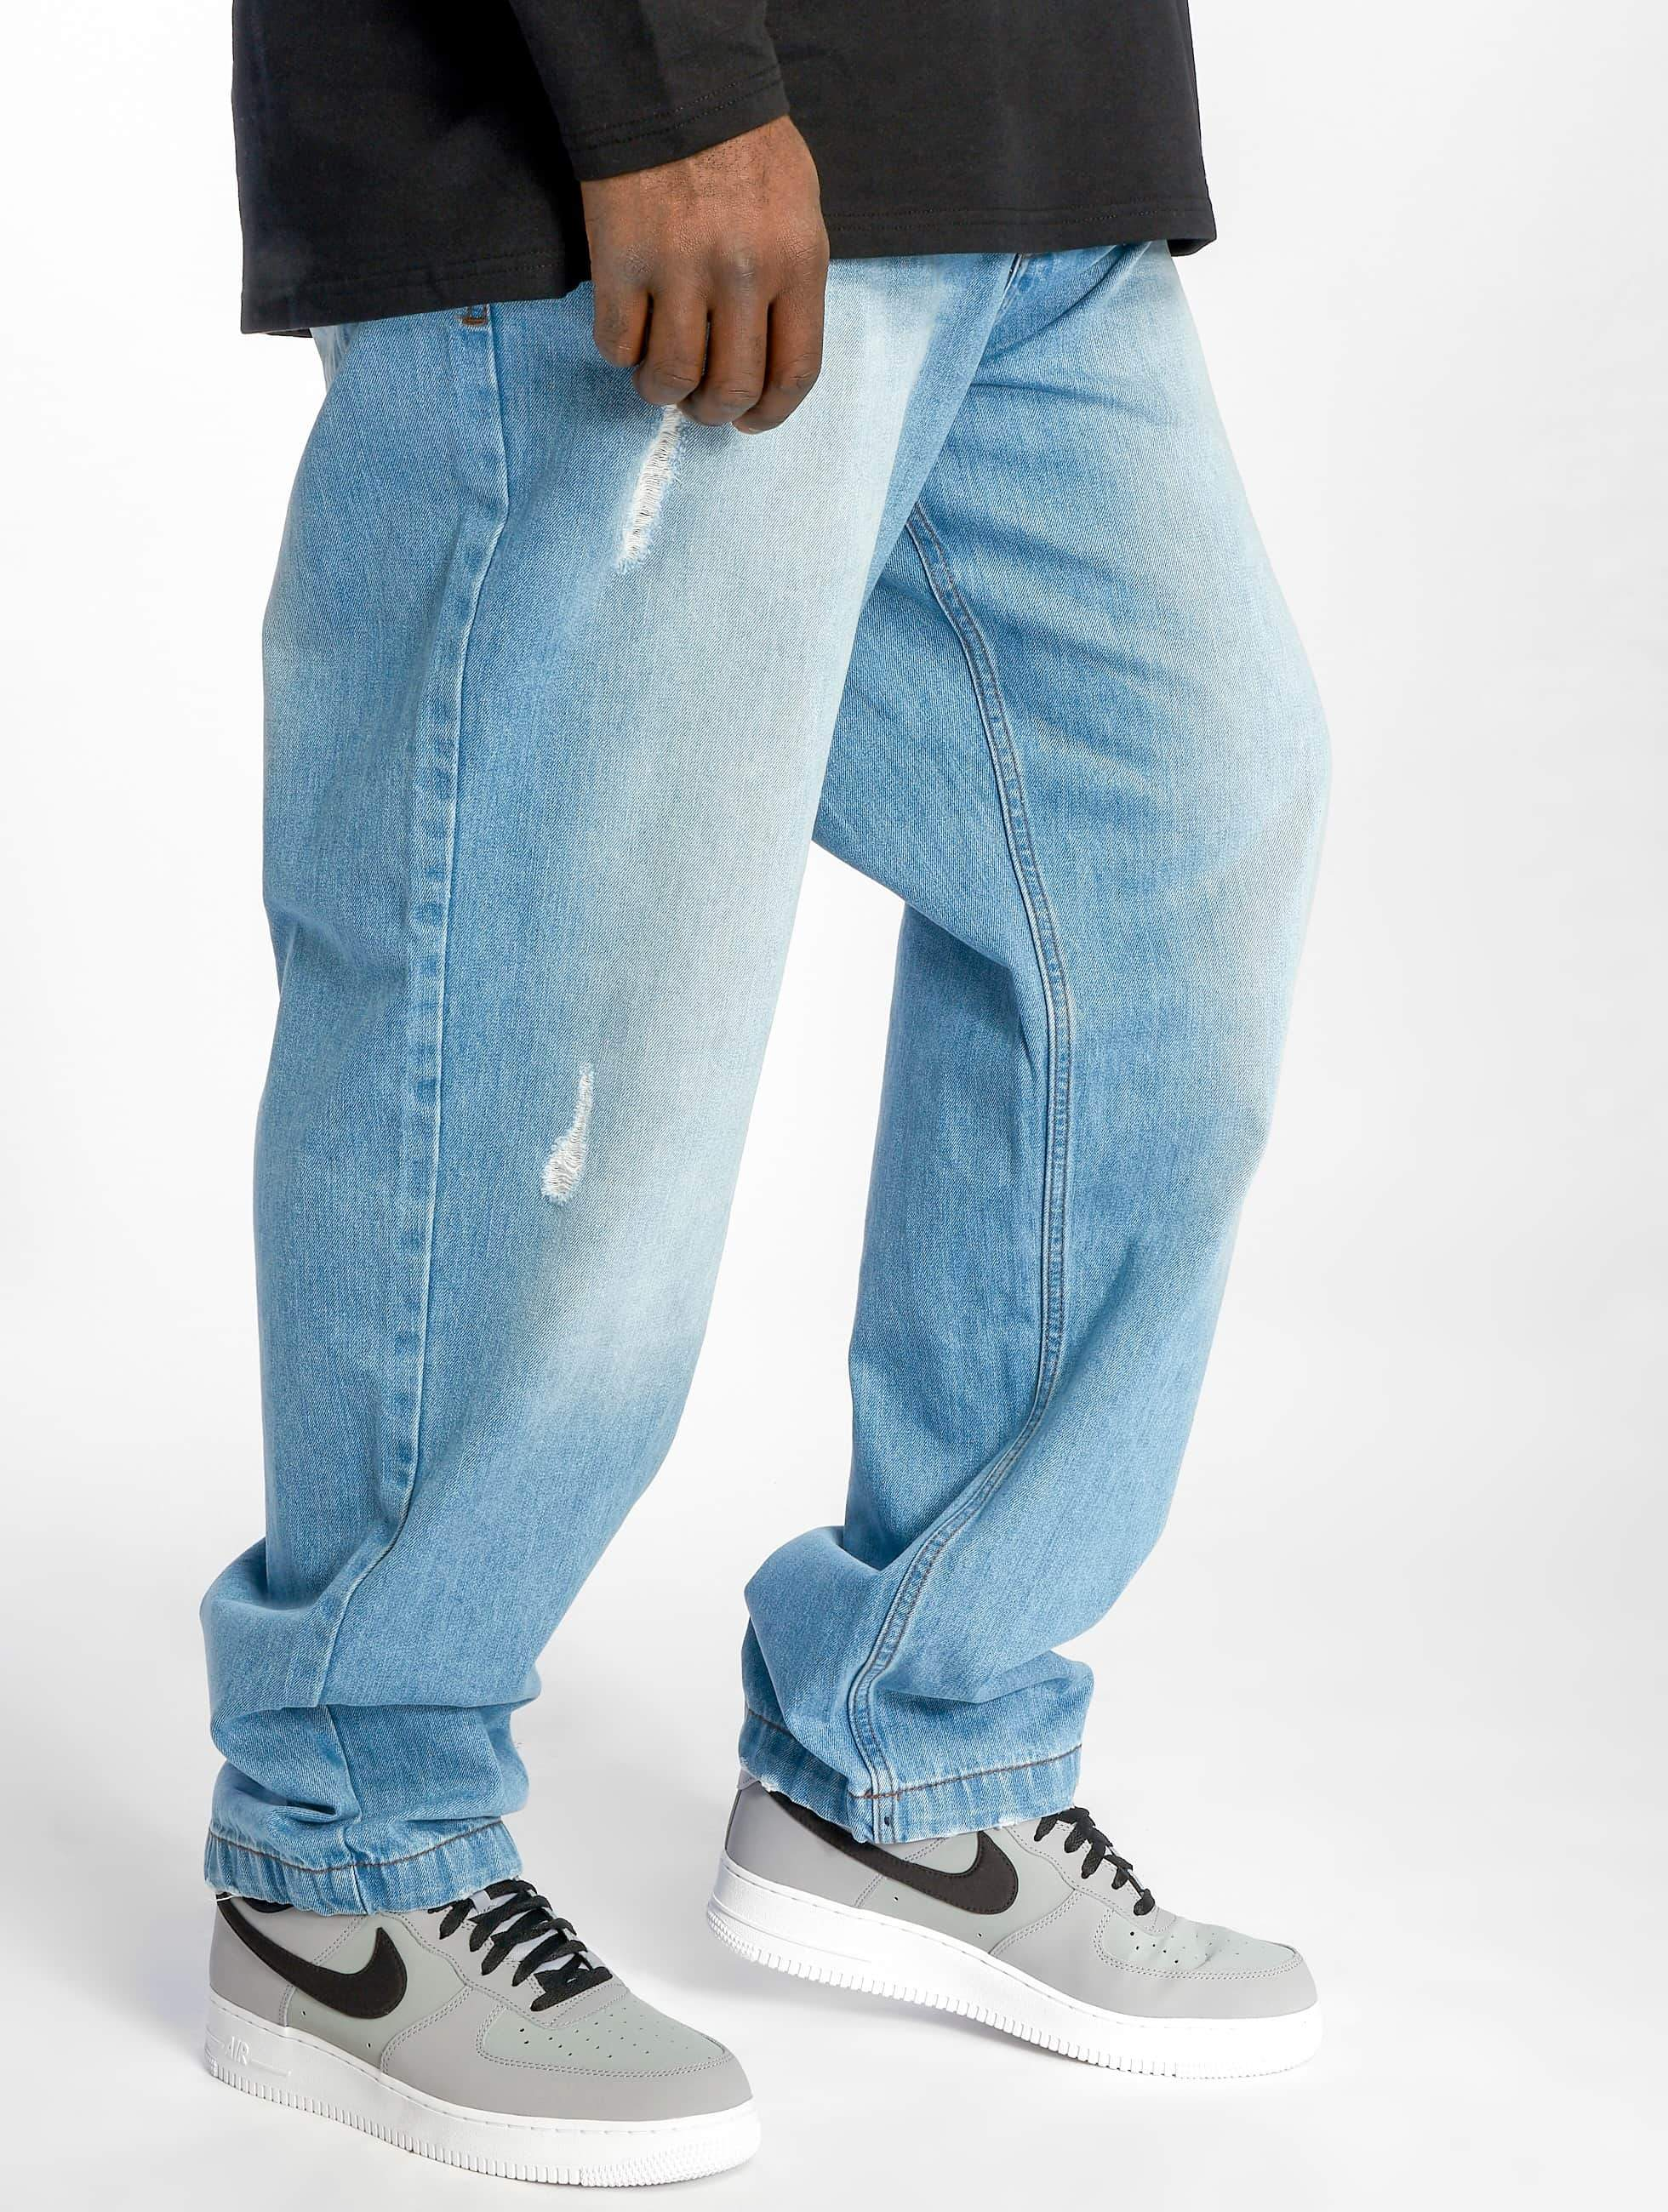 Rocawear / Baggy Philipos in blue W 33